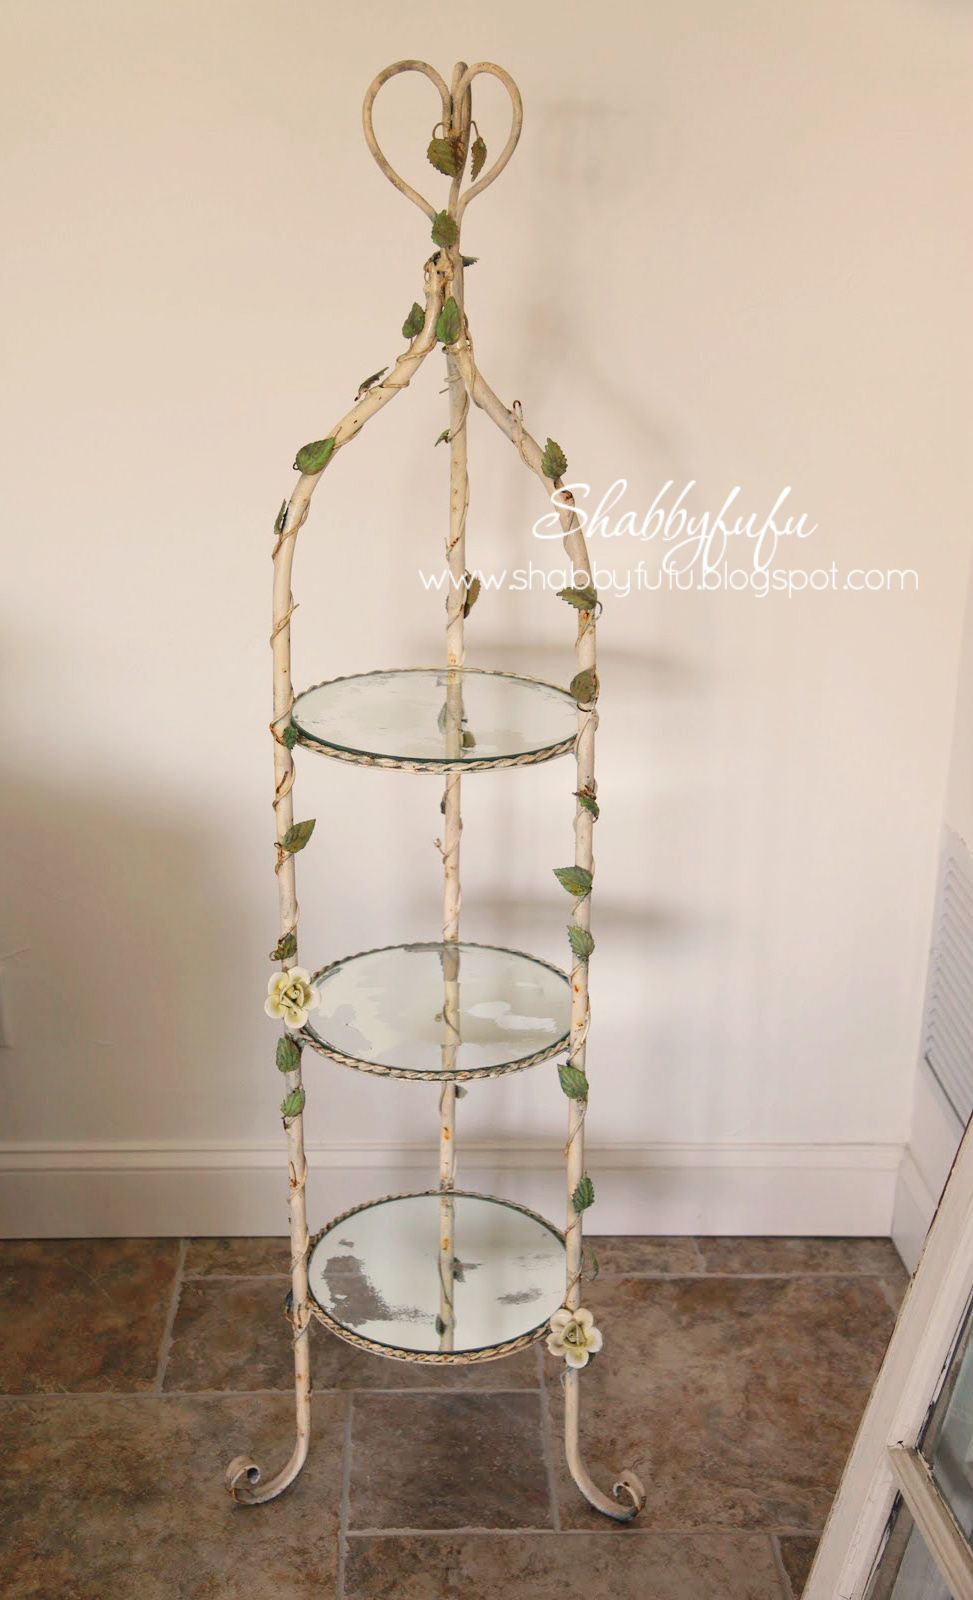 Thes mirror shelves were once shiny and reflective, but this DIY mirror patina made them look old and antique.